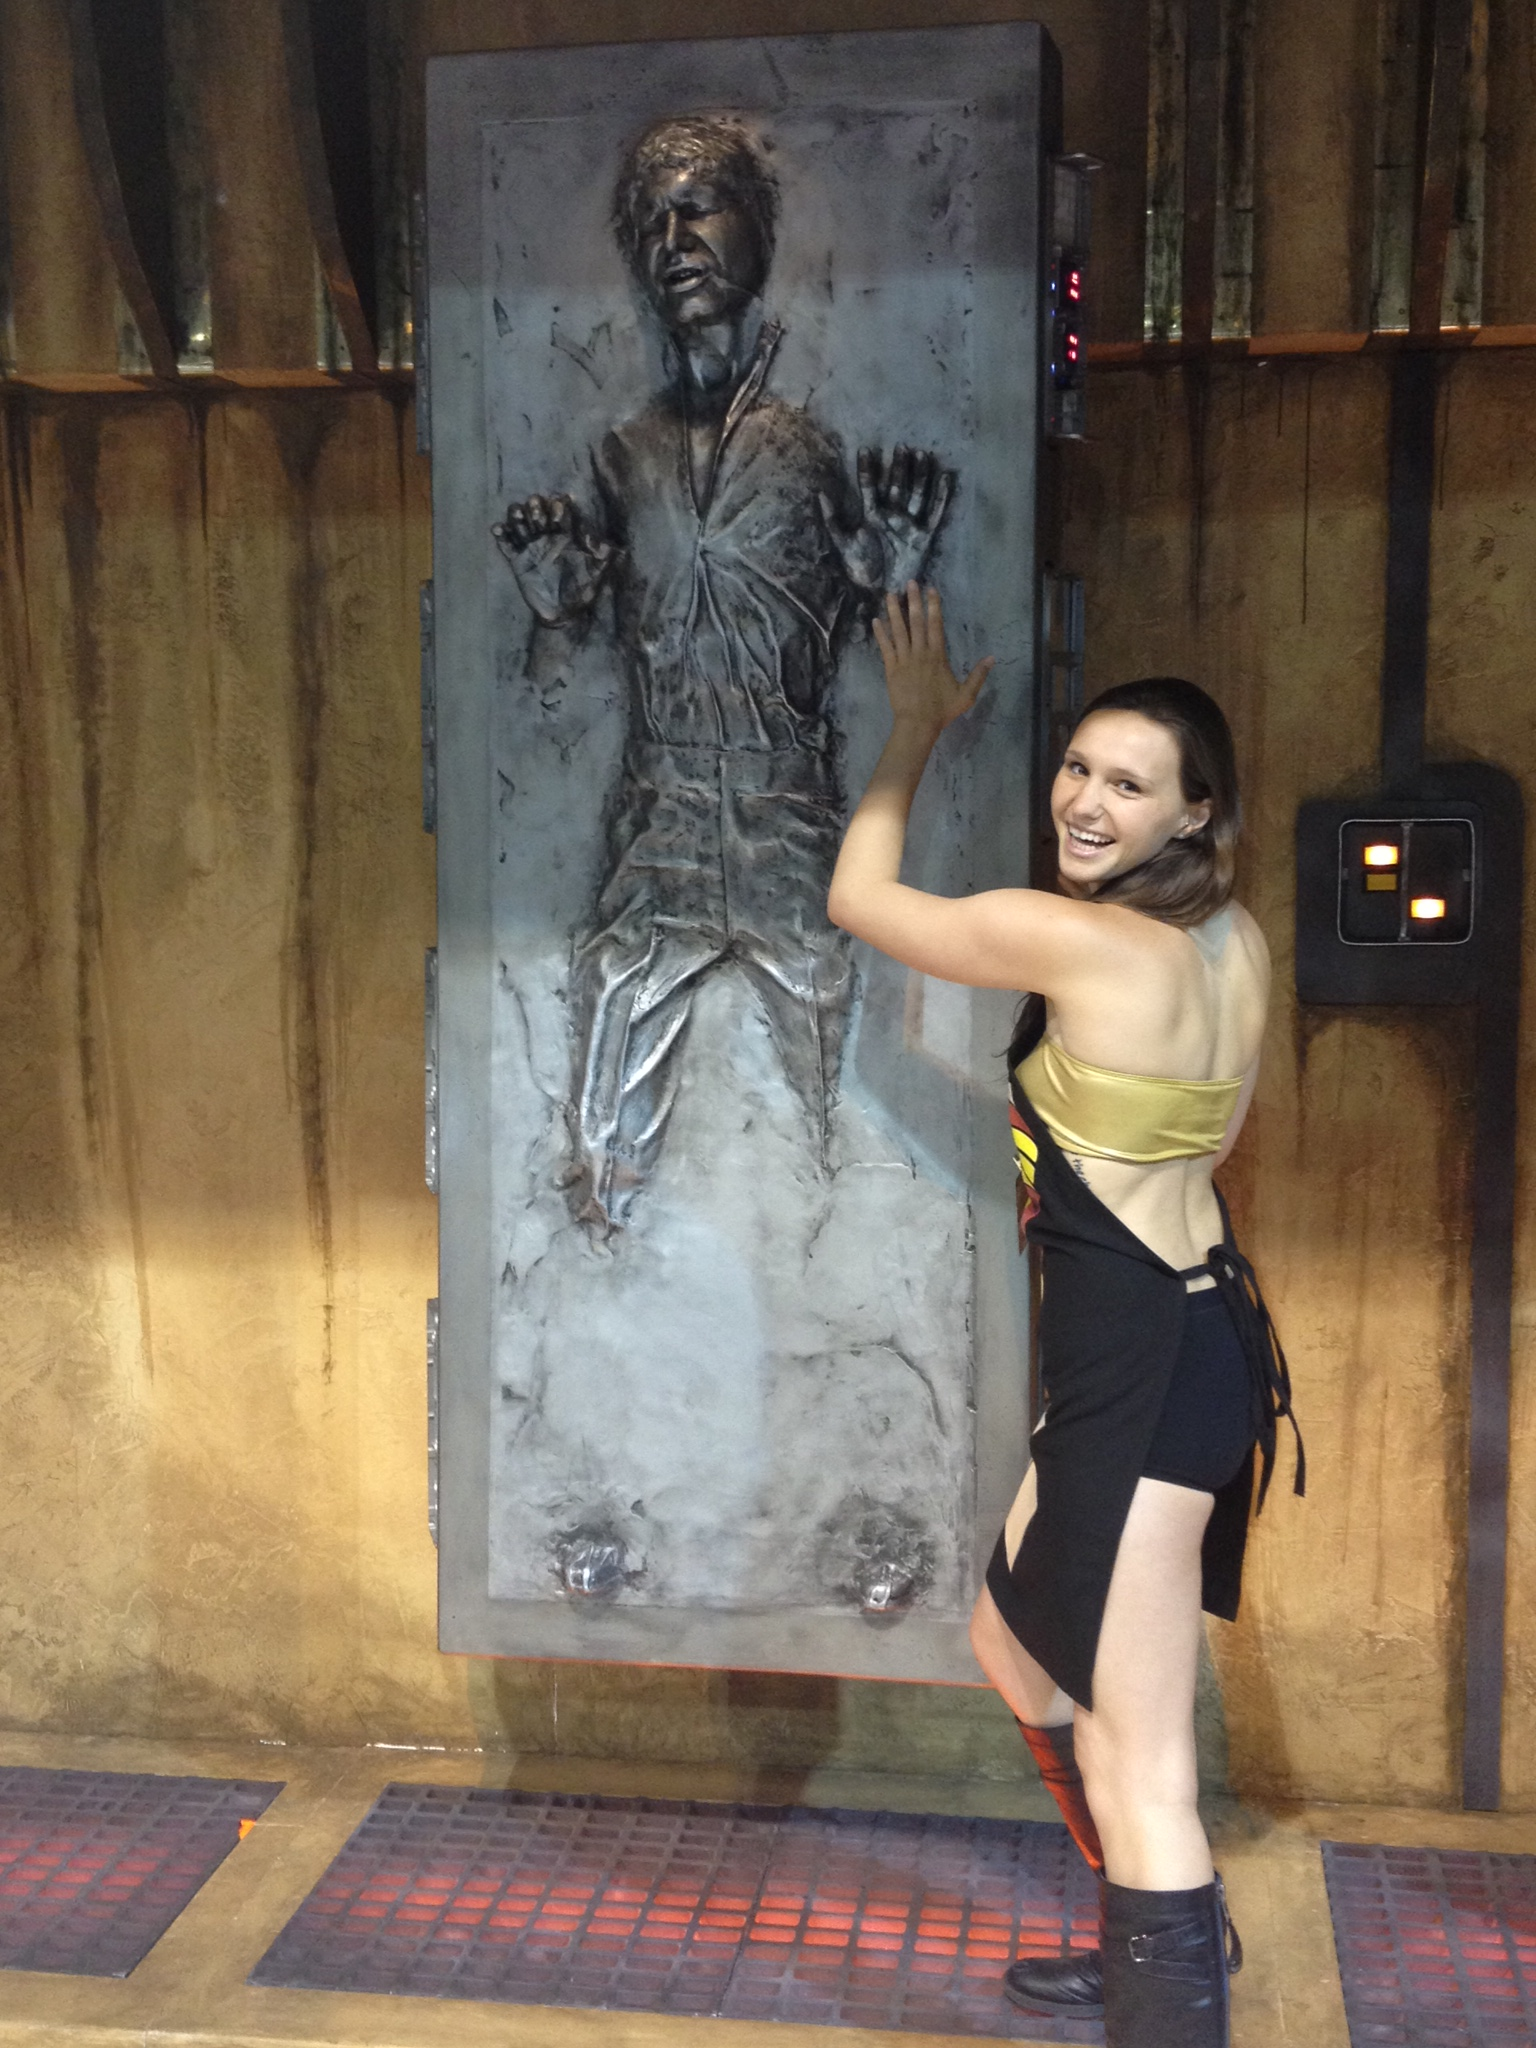 Here is Fit posing with Han Solo trapped in carbonite. Damn you Lando for selling him out to Vader and Boba Fett. This was a part of the Far Away Creations area where a group of Star Wars fans provided models and replicas of the original trilogy. Lots of fun.